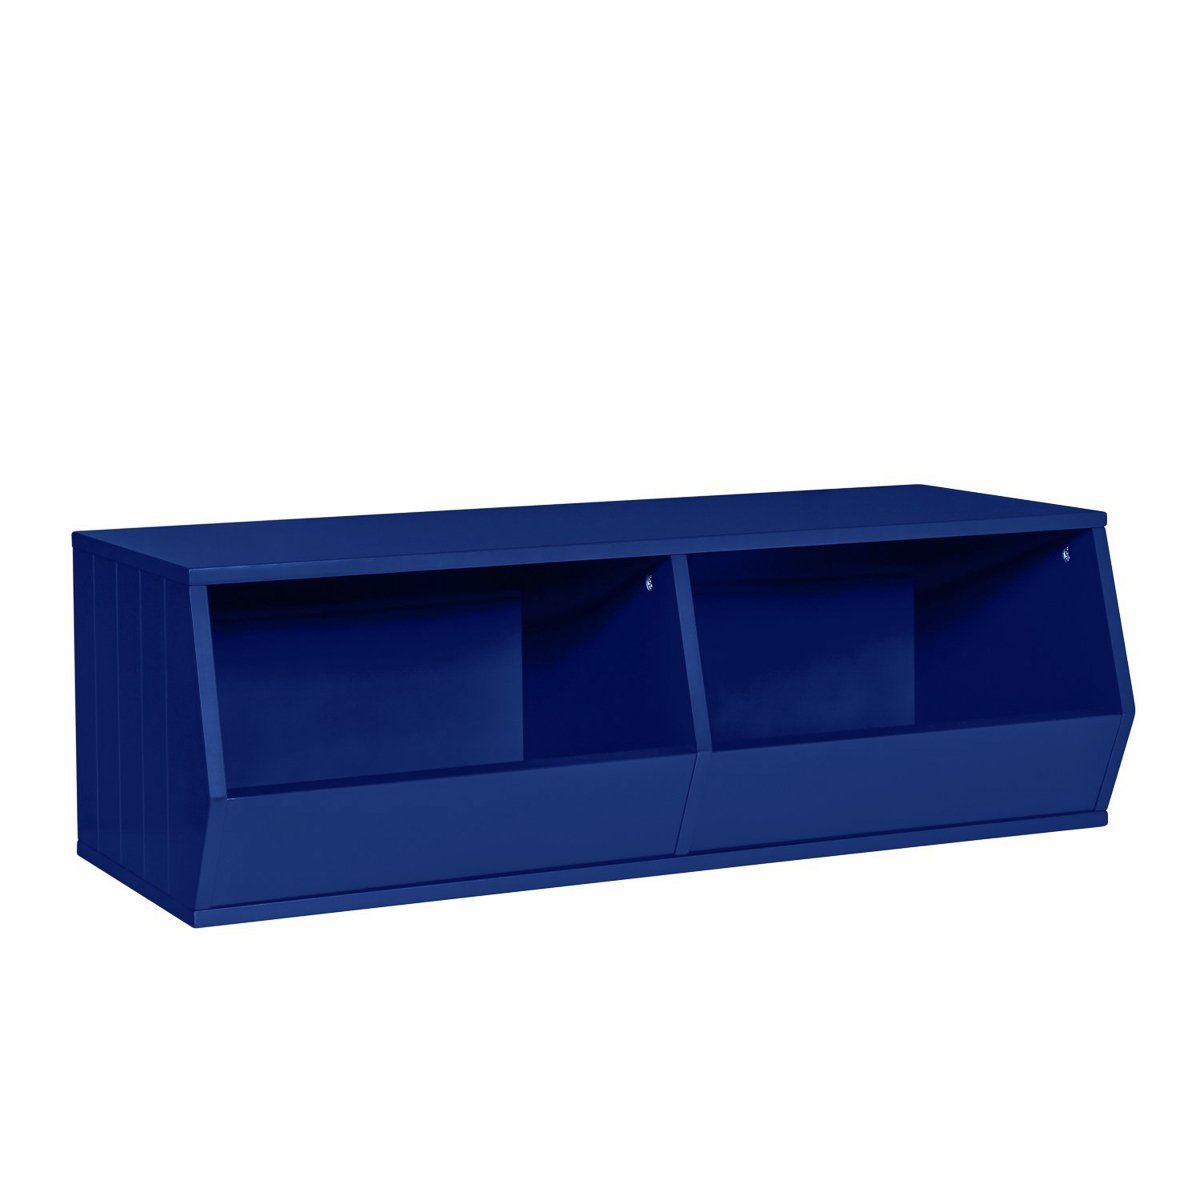 RiverRidge Kids Storage Stacker-2 Veggie Bins, Navy